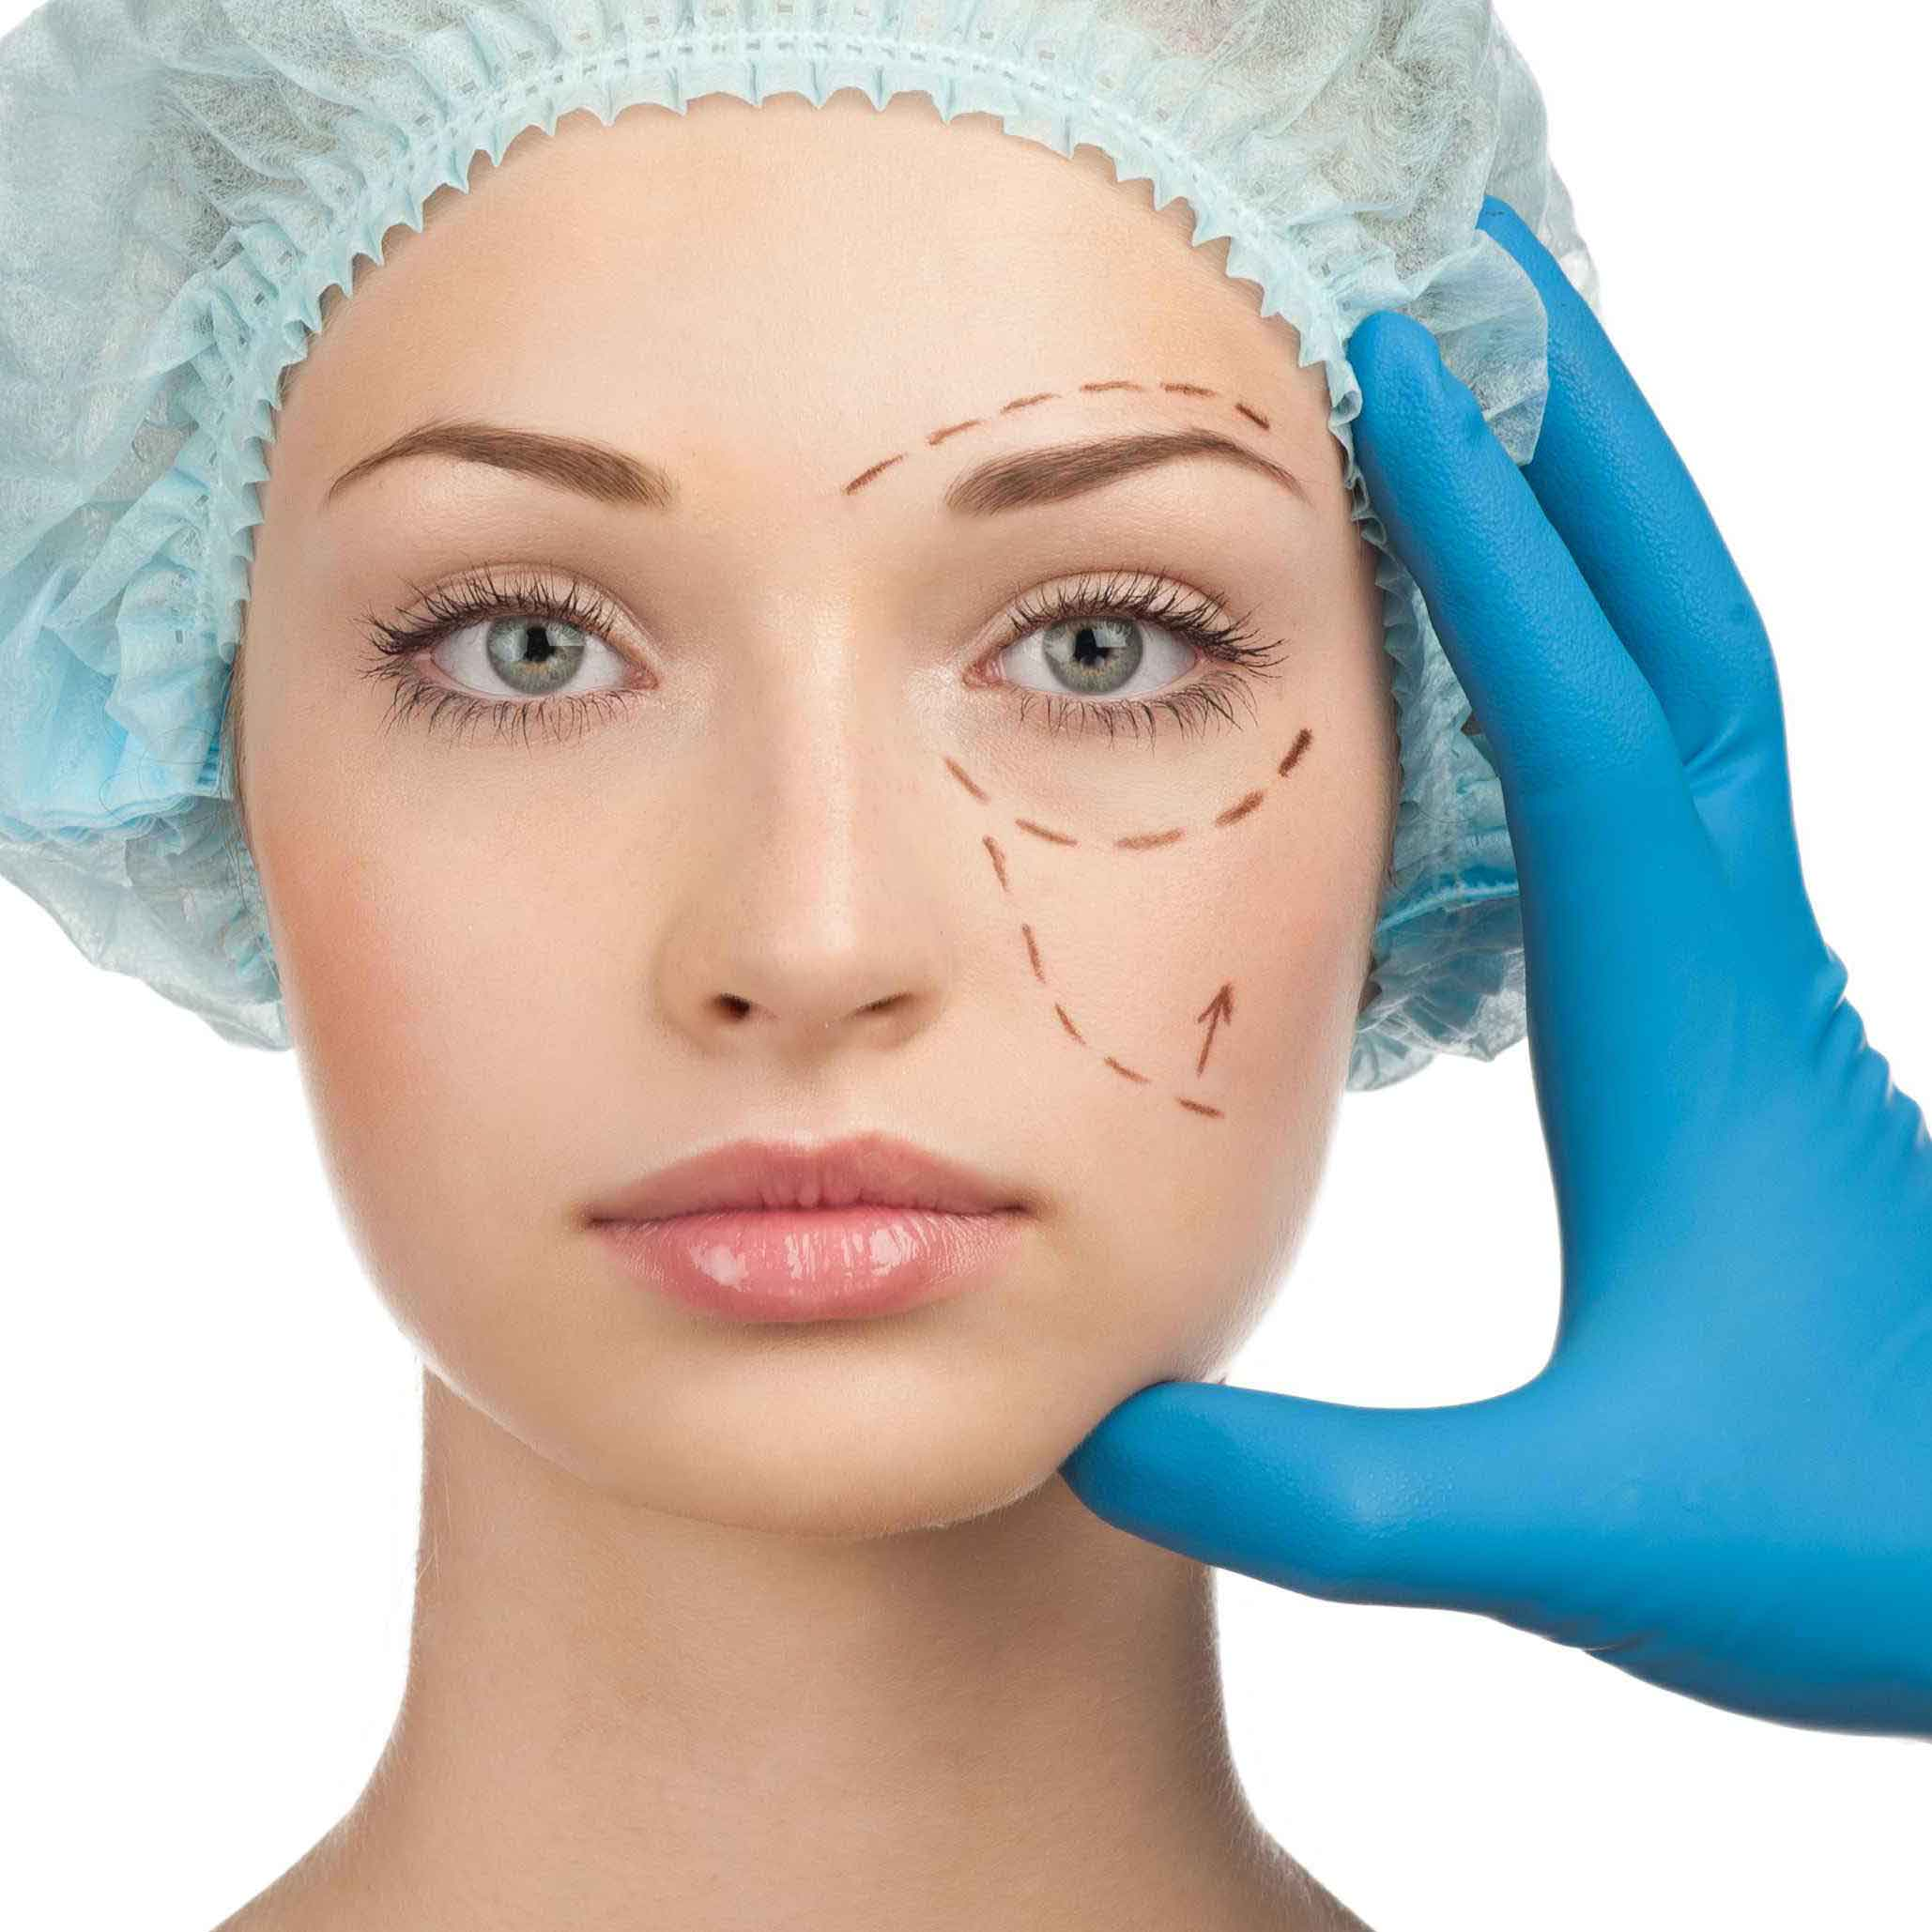 Plastic surgery specialists 4